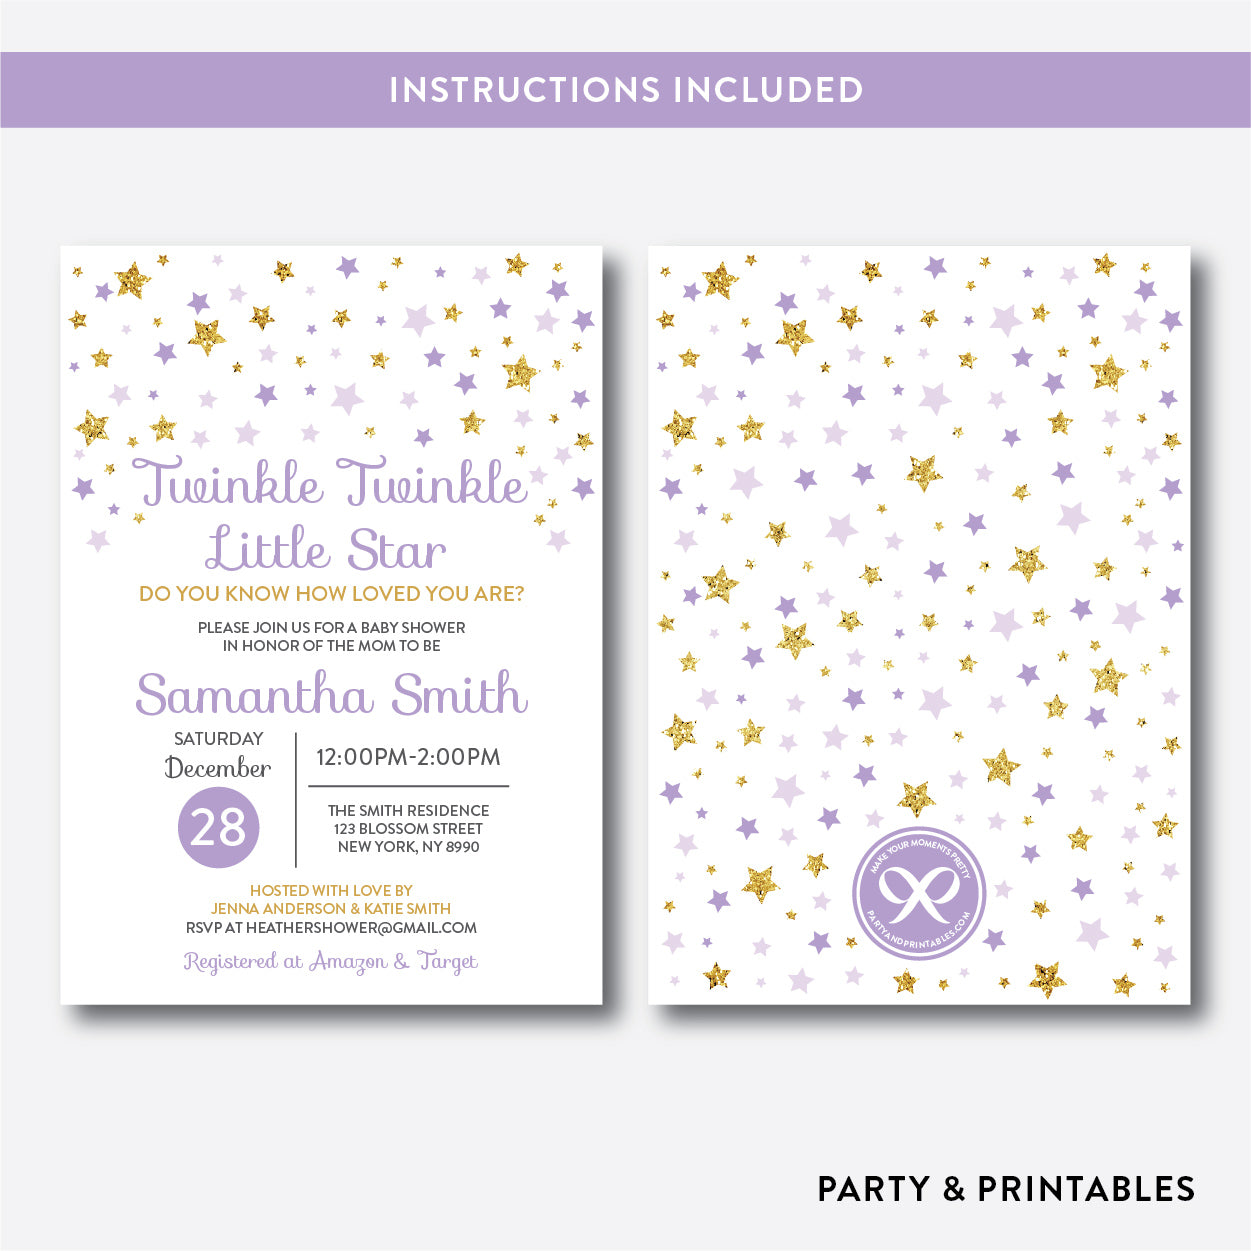 Twinkle Twinkle Little Star Baby Shower Invitation / Editable / Instant Download (GBS.08), invitation - Party and Printables